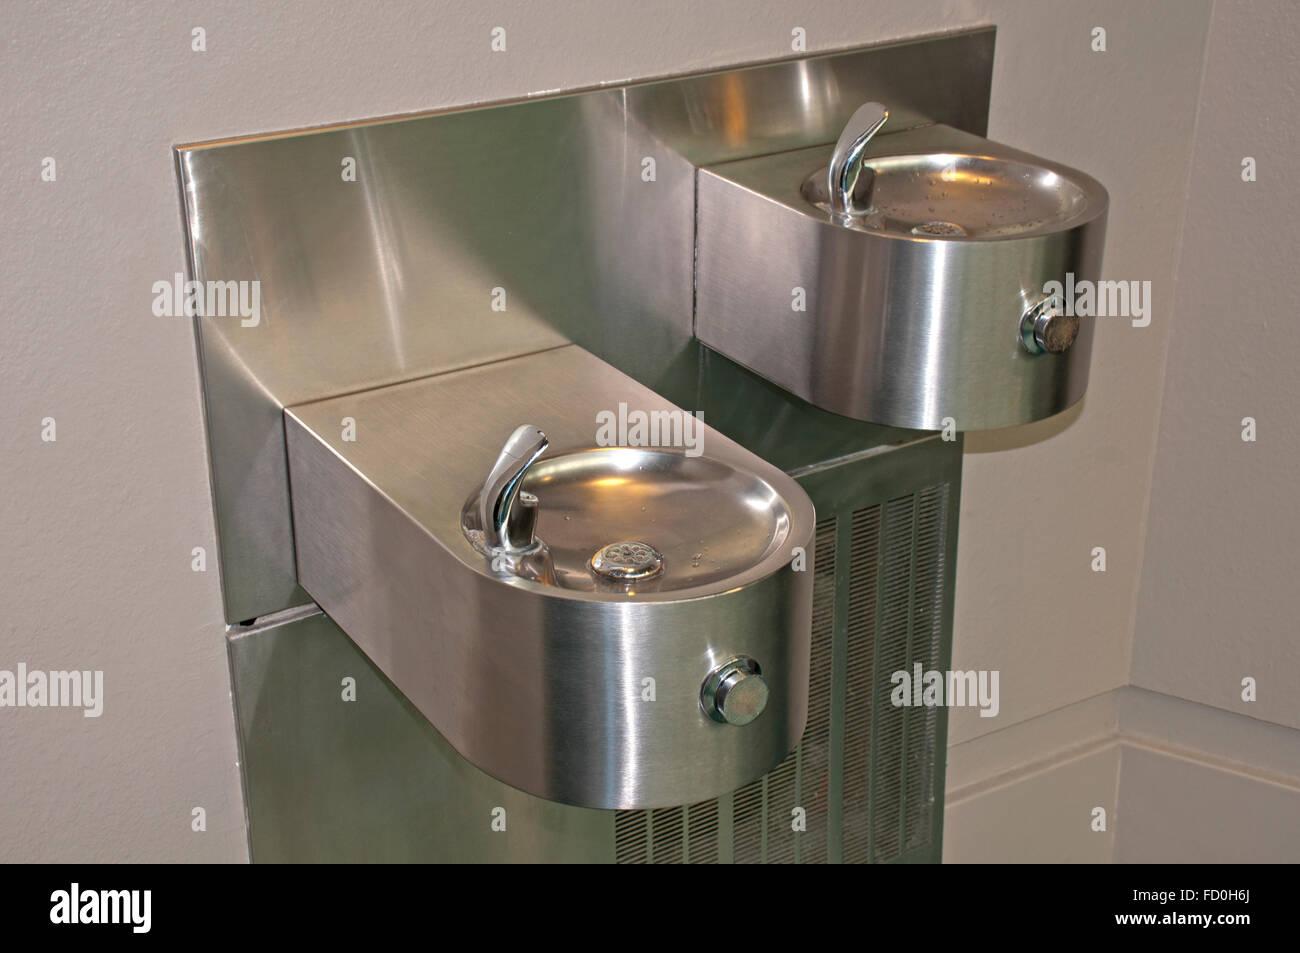 Water Cooler in airport - Stock Image